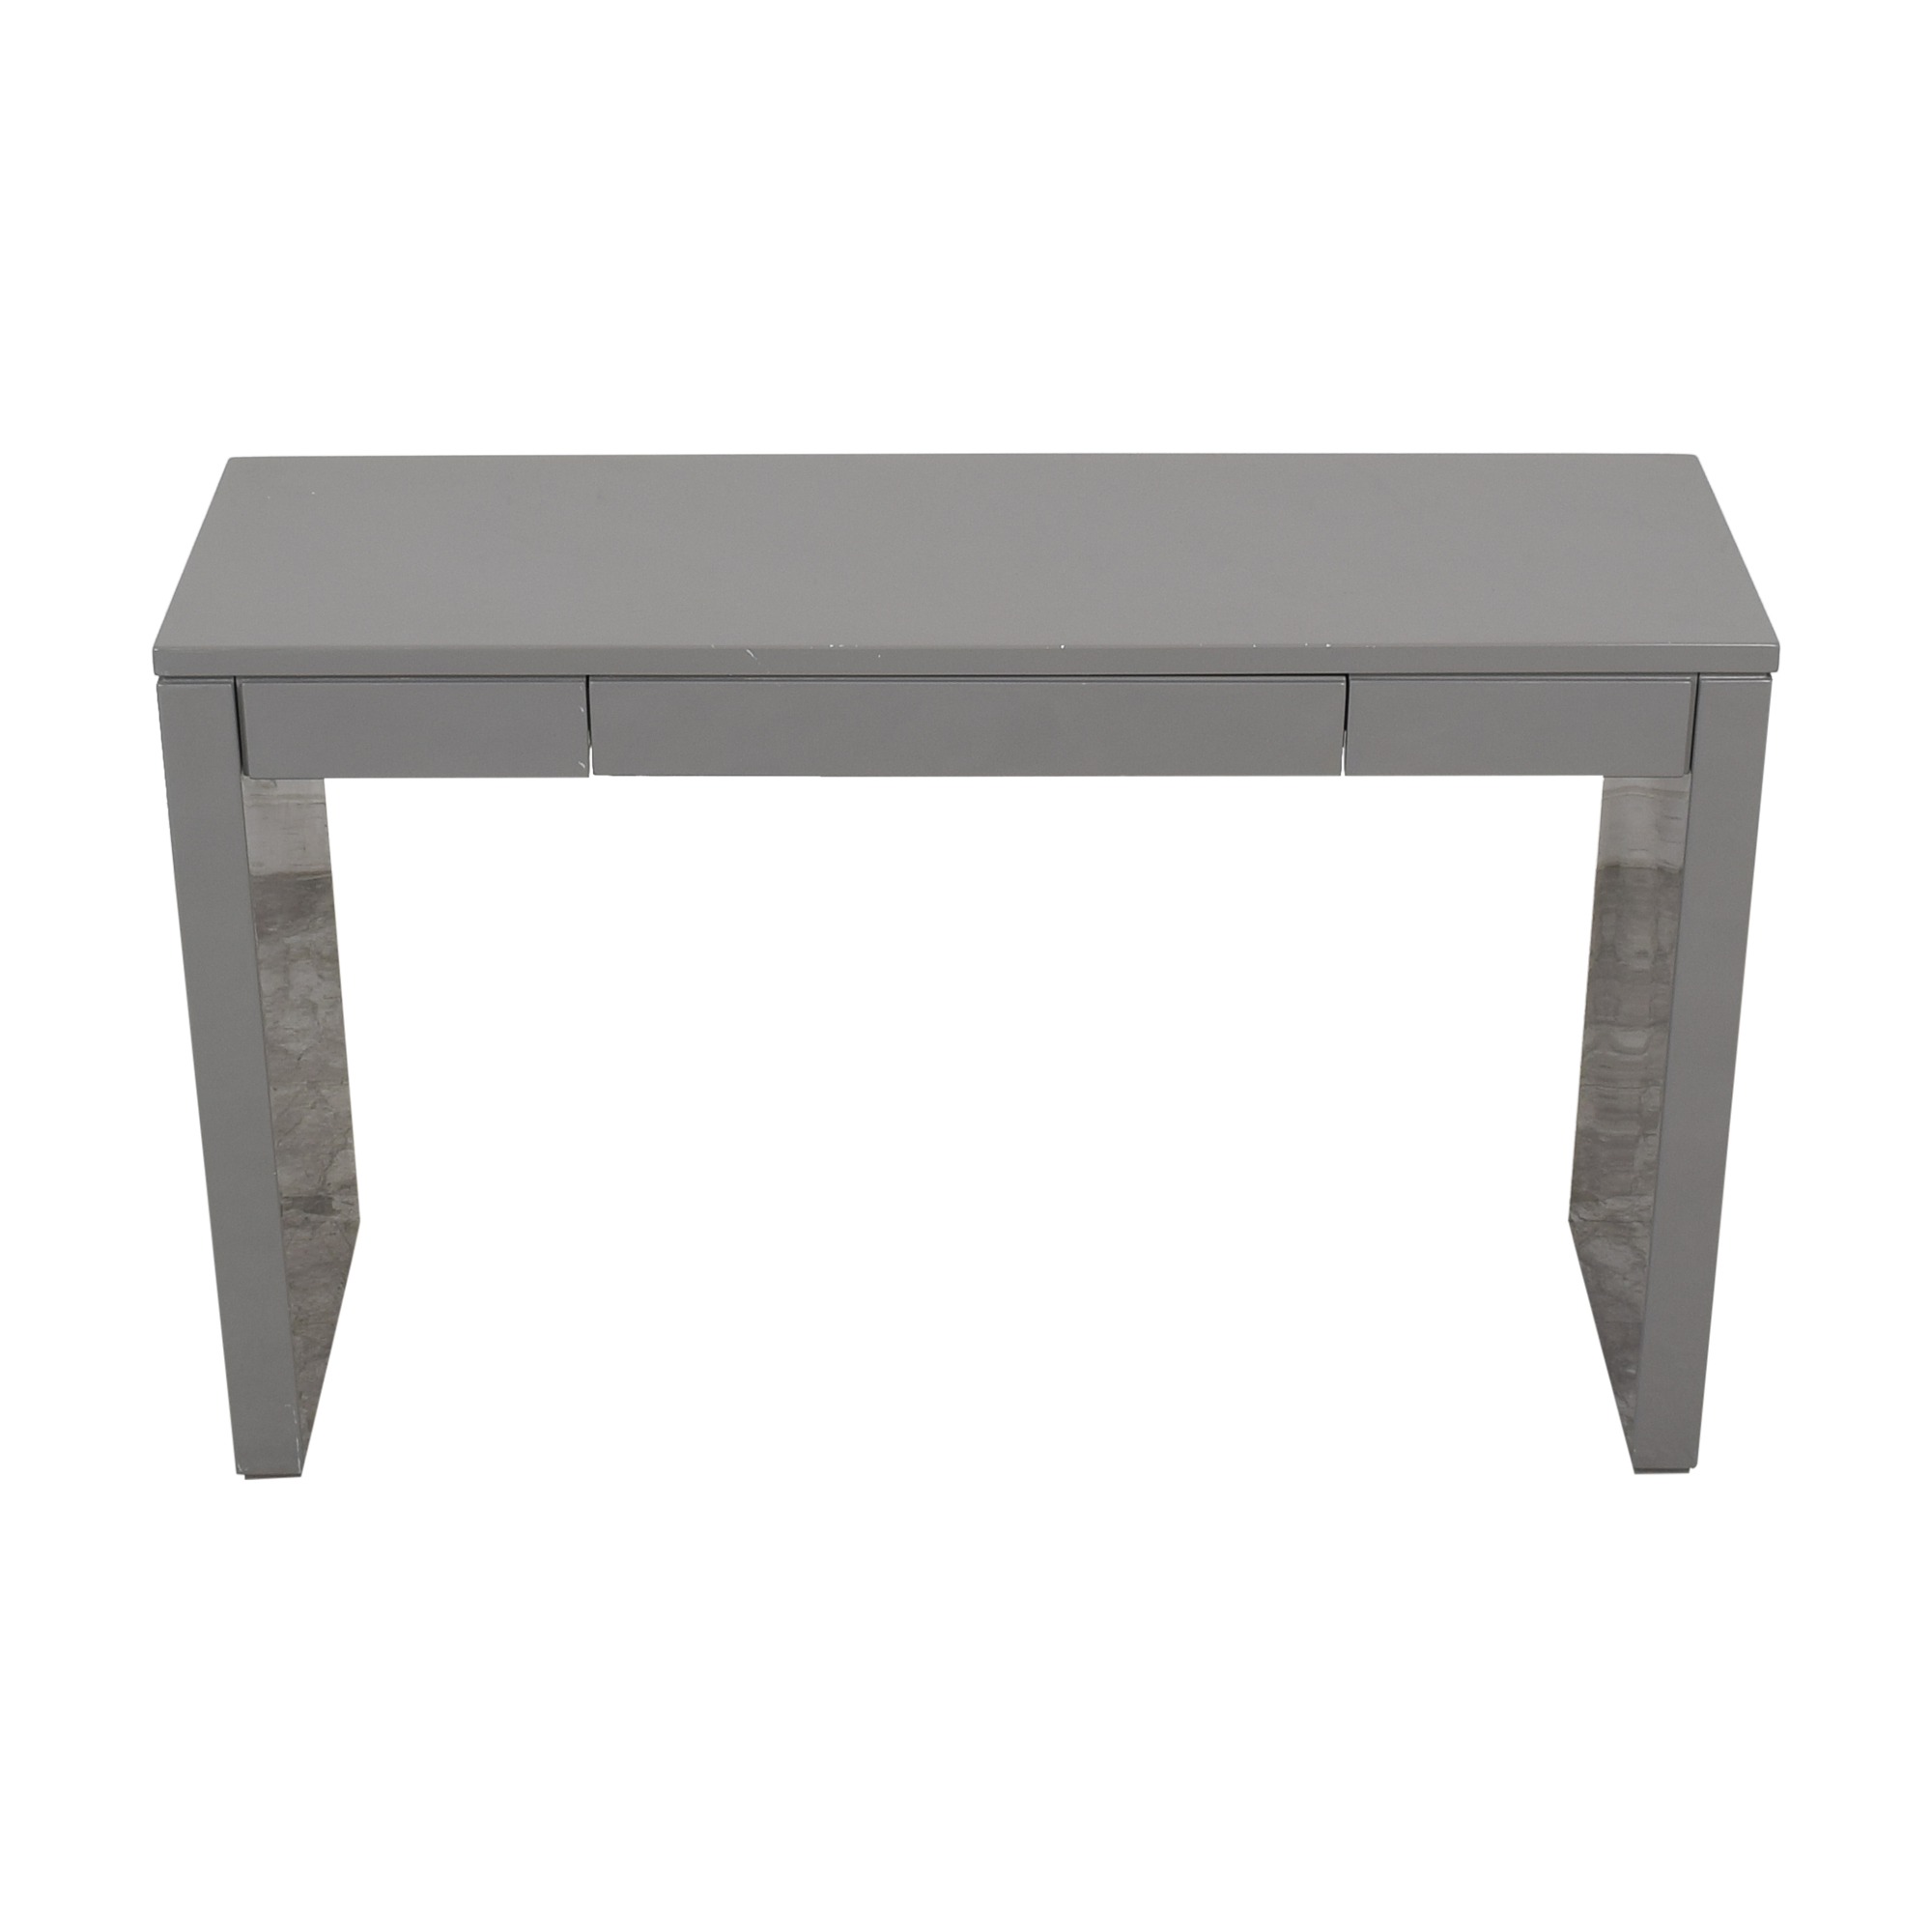 Bungalow 5 Bungalow 5 Odom Console Table pa